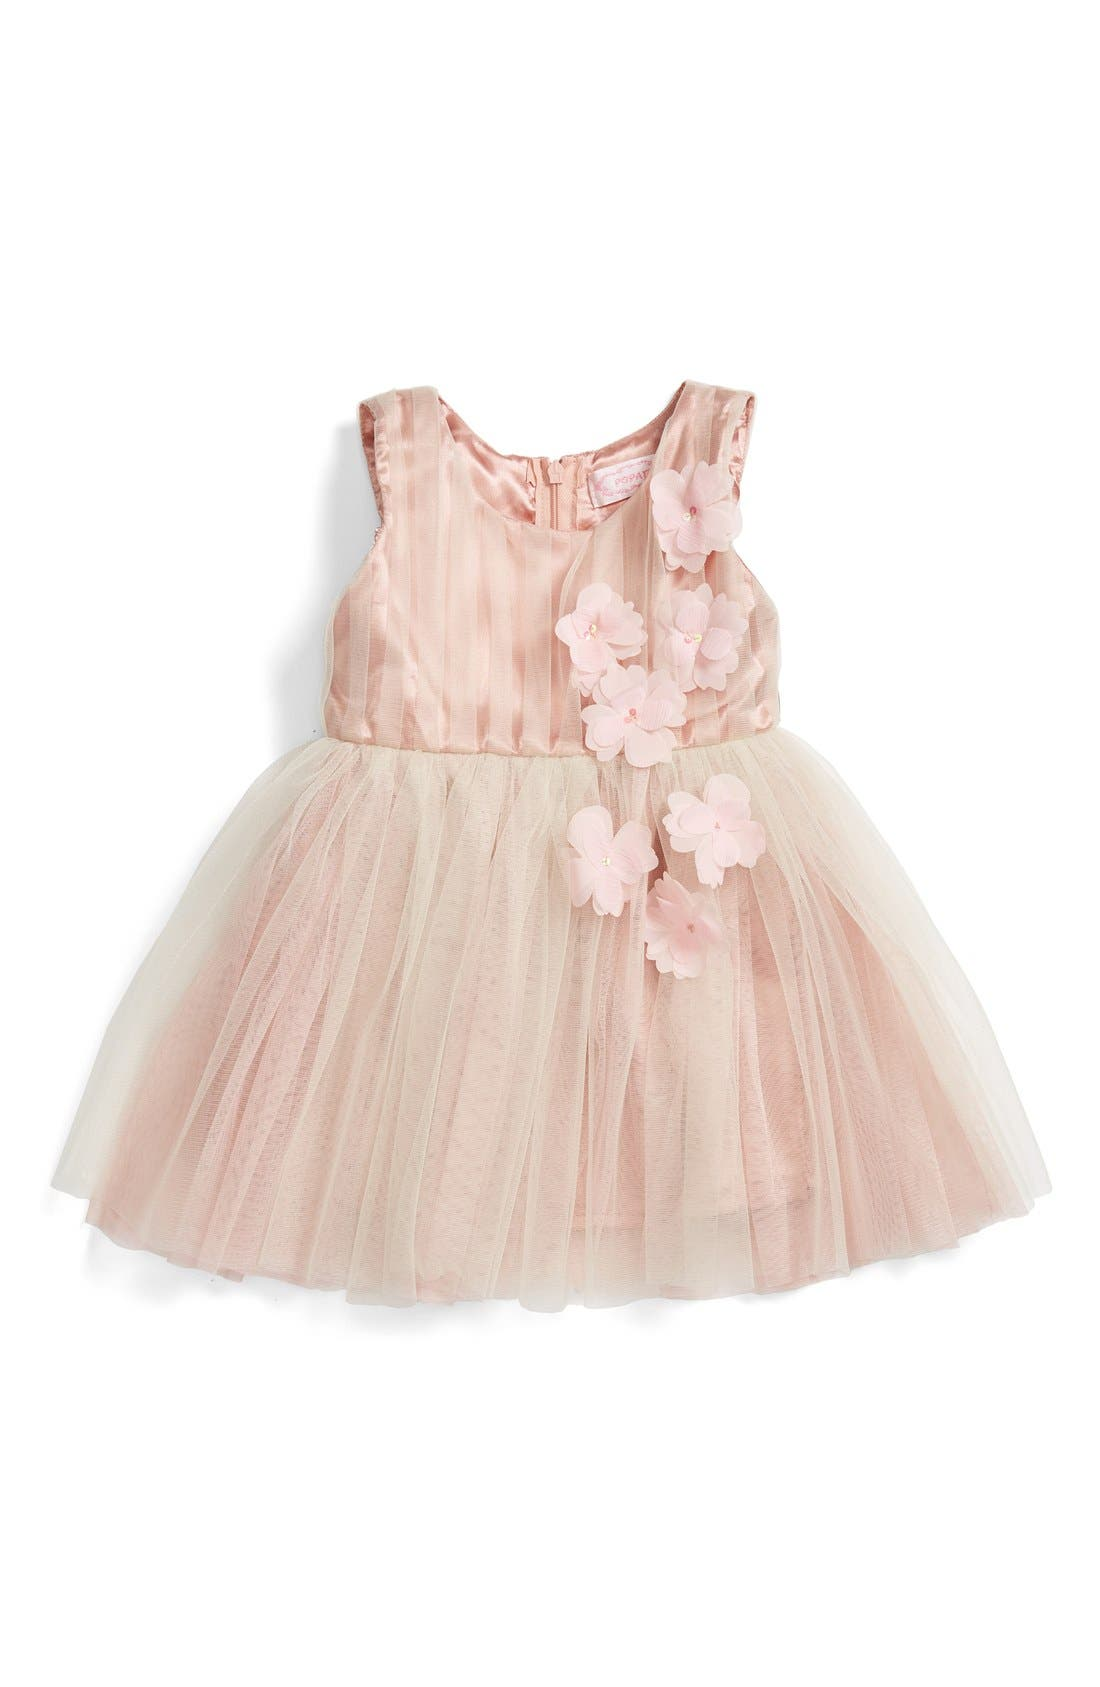 Sleeveless Rosette Tulle Dress,                         Main,                         color, 251